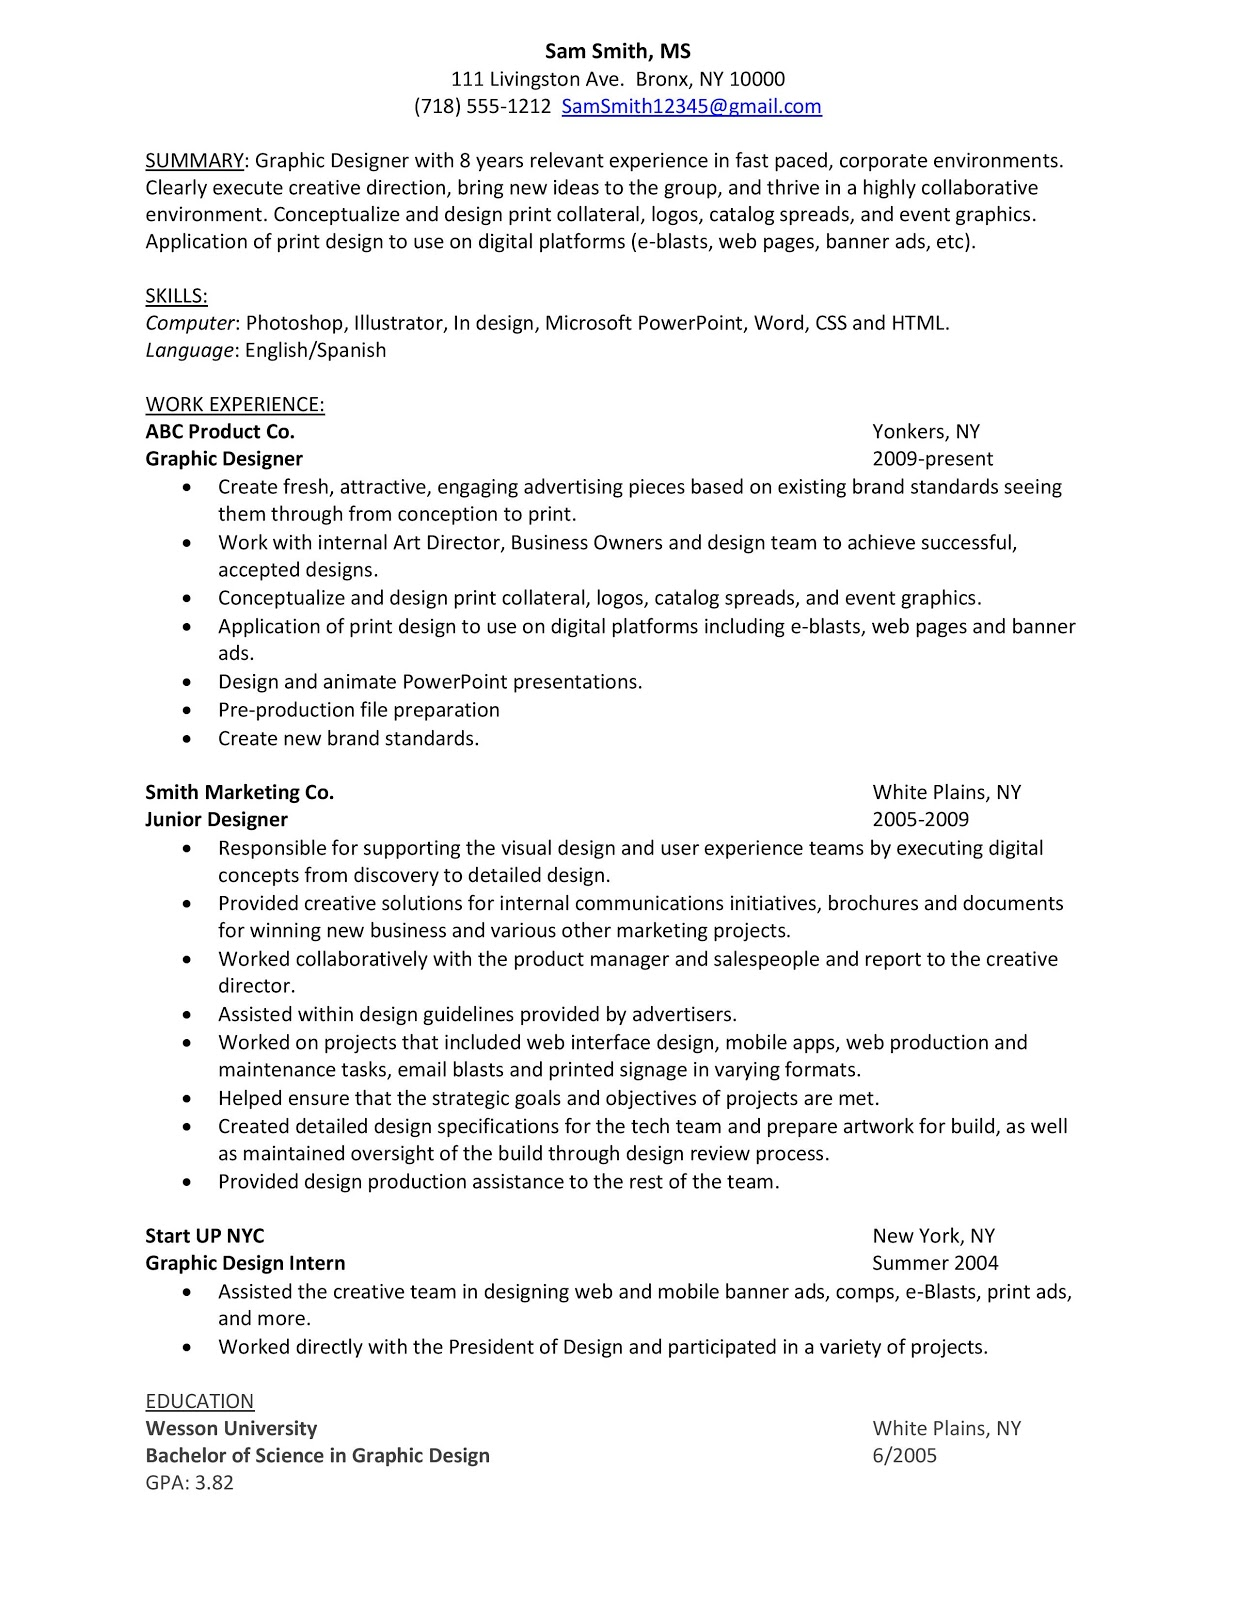 Wrestling Resume Sample Resume Graphic Designer Career Advice Pro Wrestling